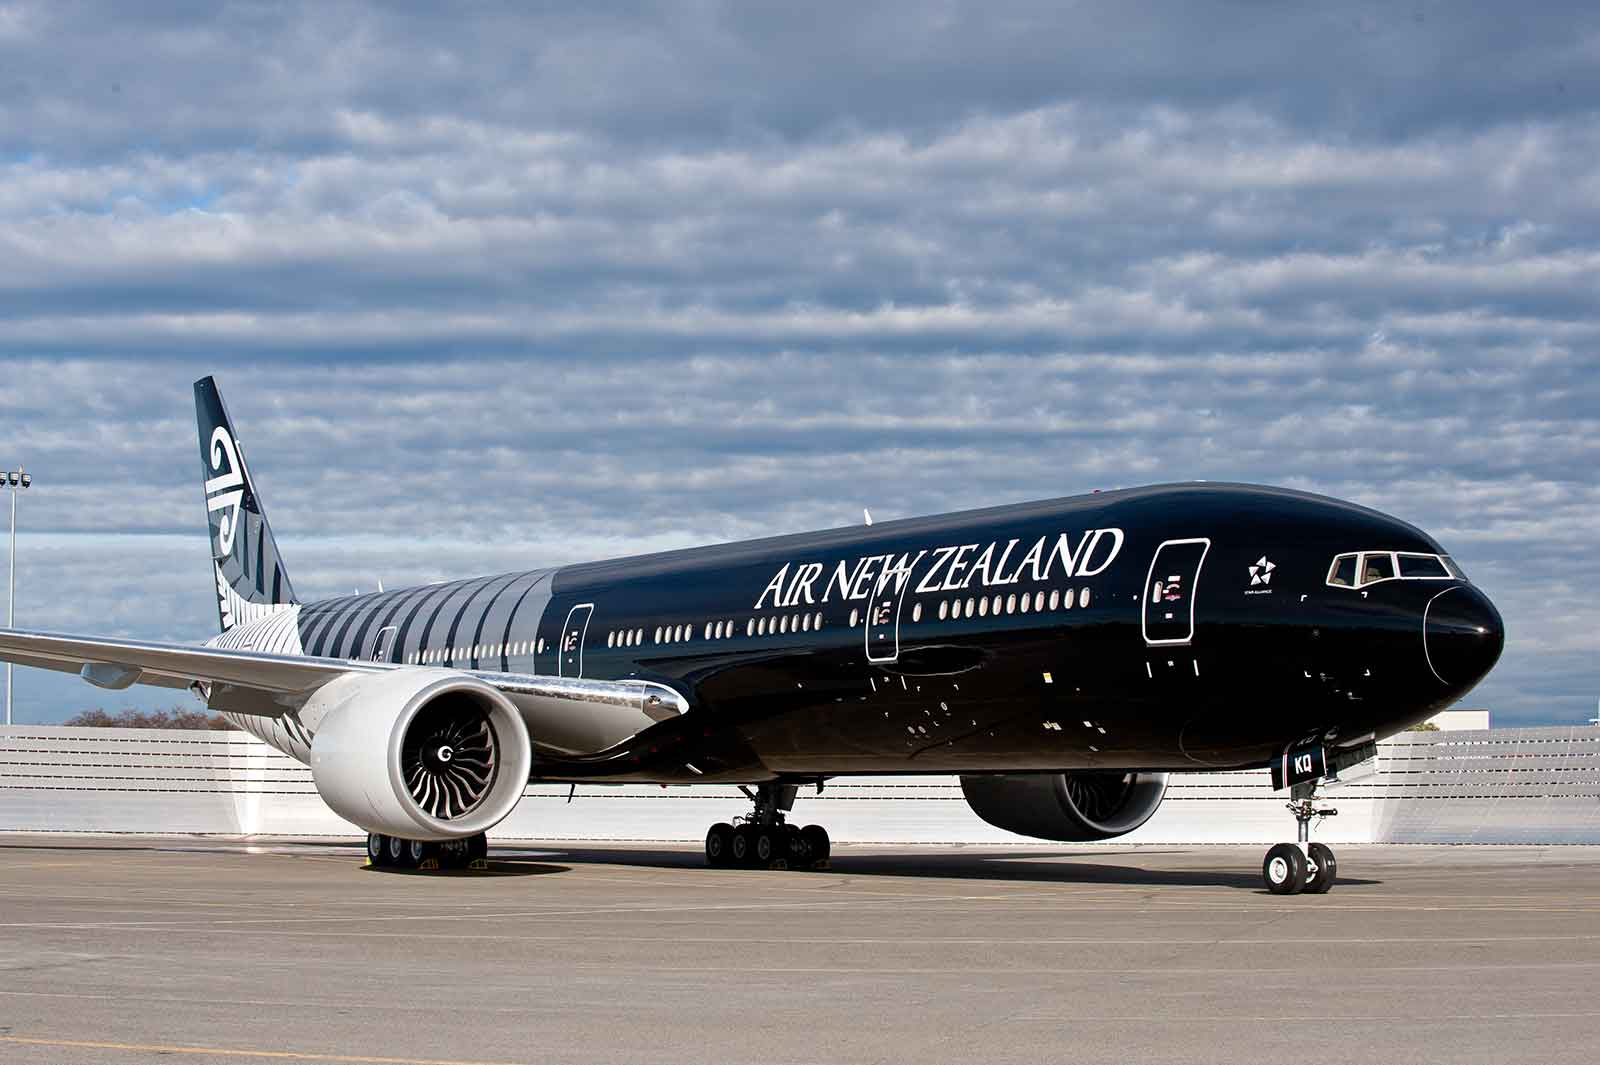 Air New Zealand Boeing 777-200 used for Auckland Buenos Aires flights